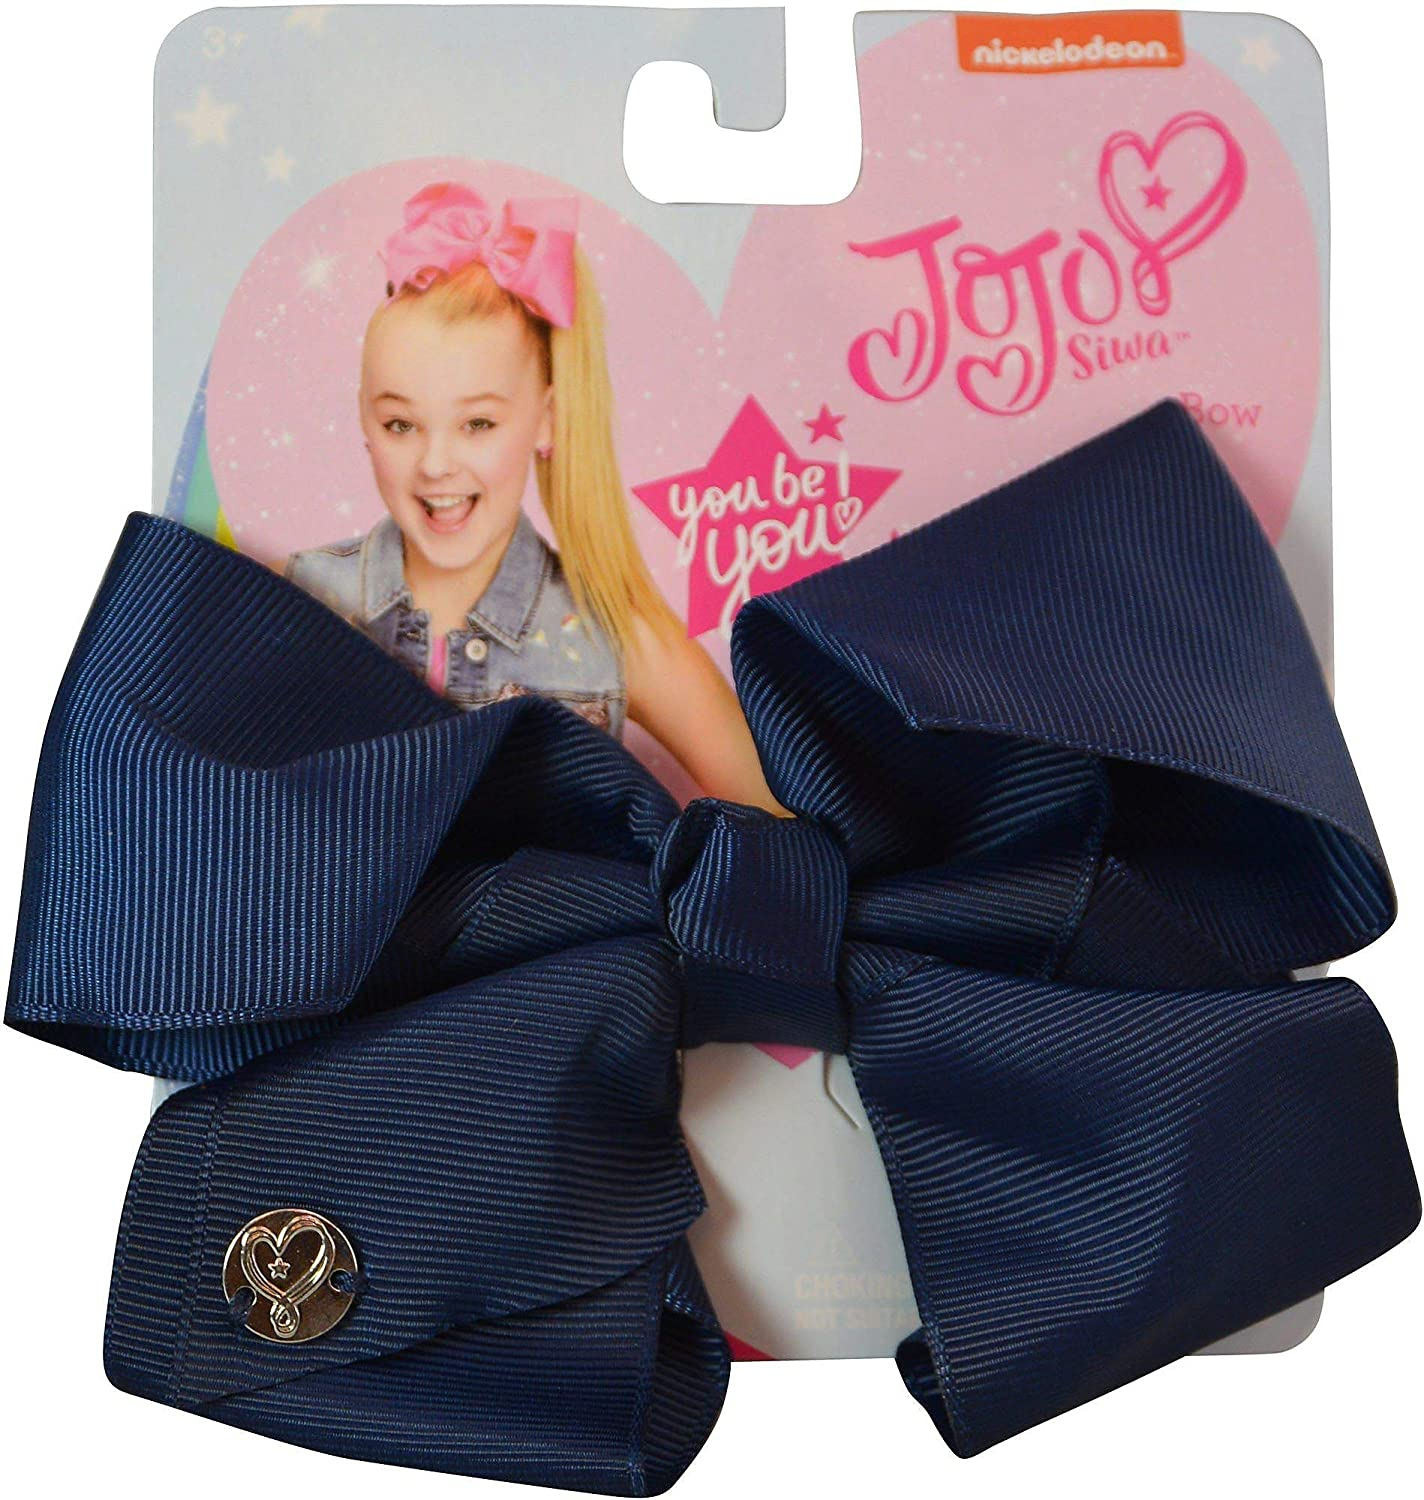 hair bows ribbon girl school accessories clip navy blue light blue medium